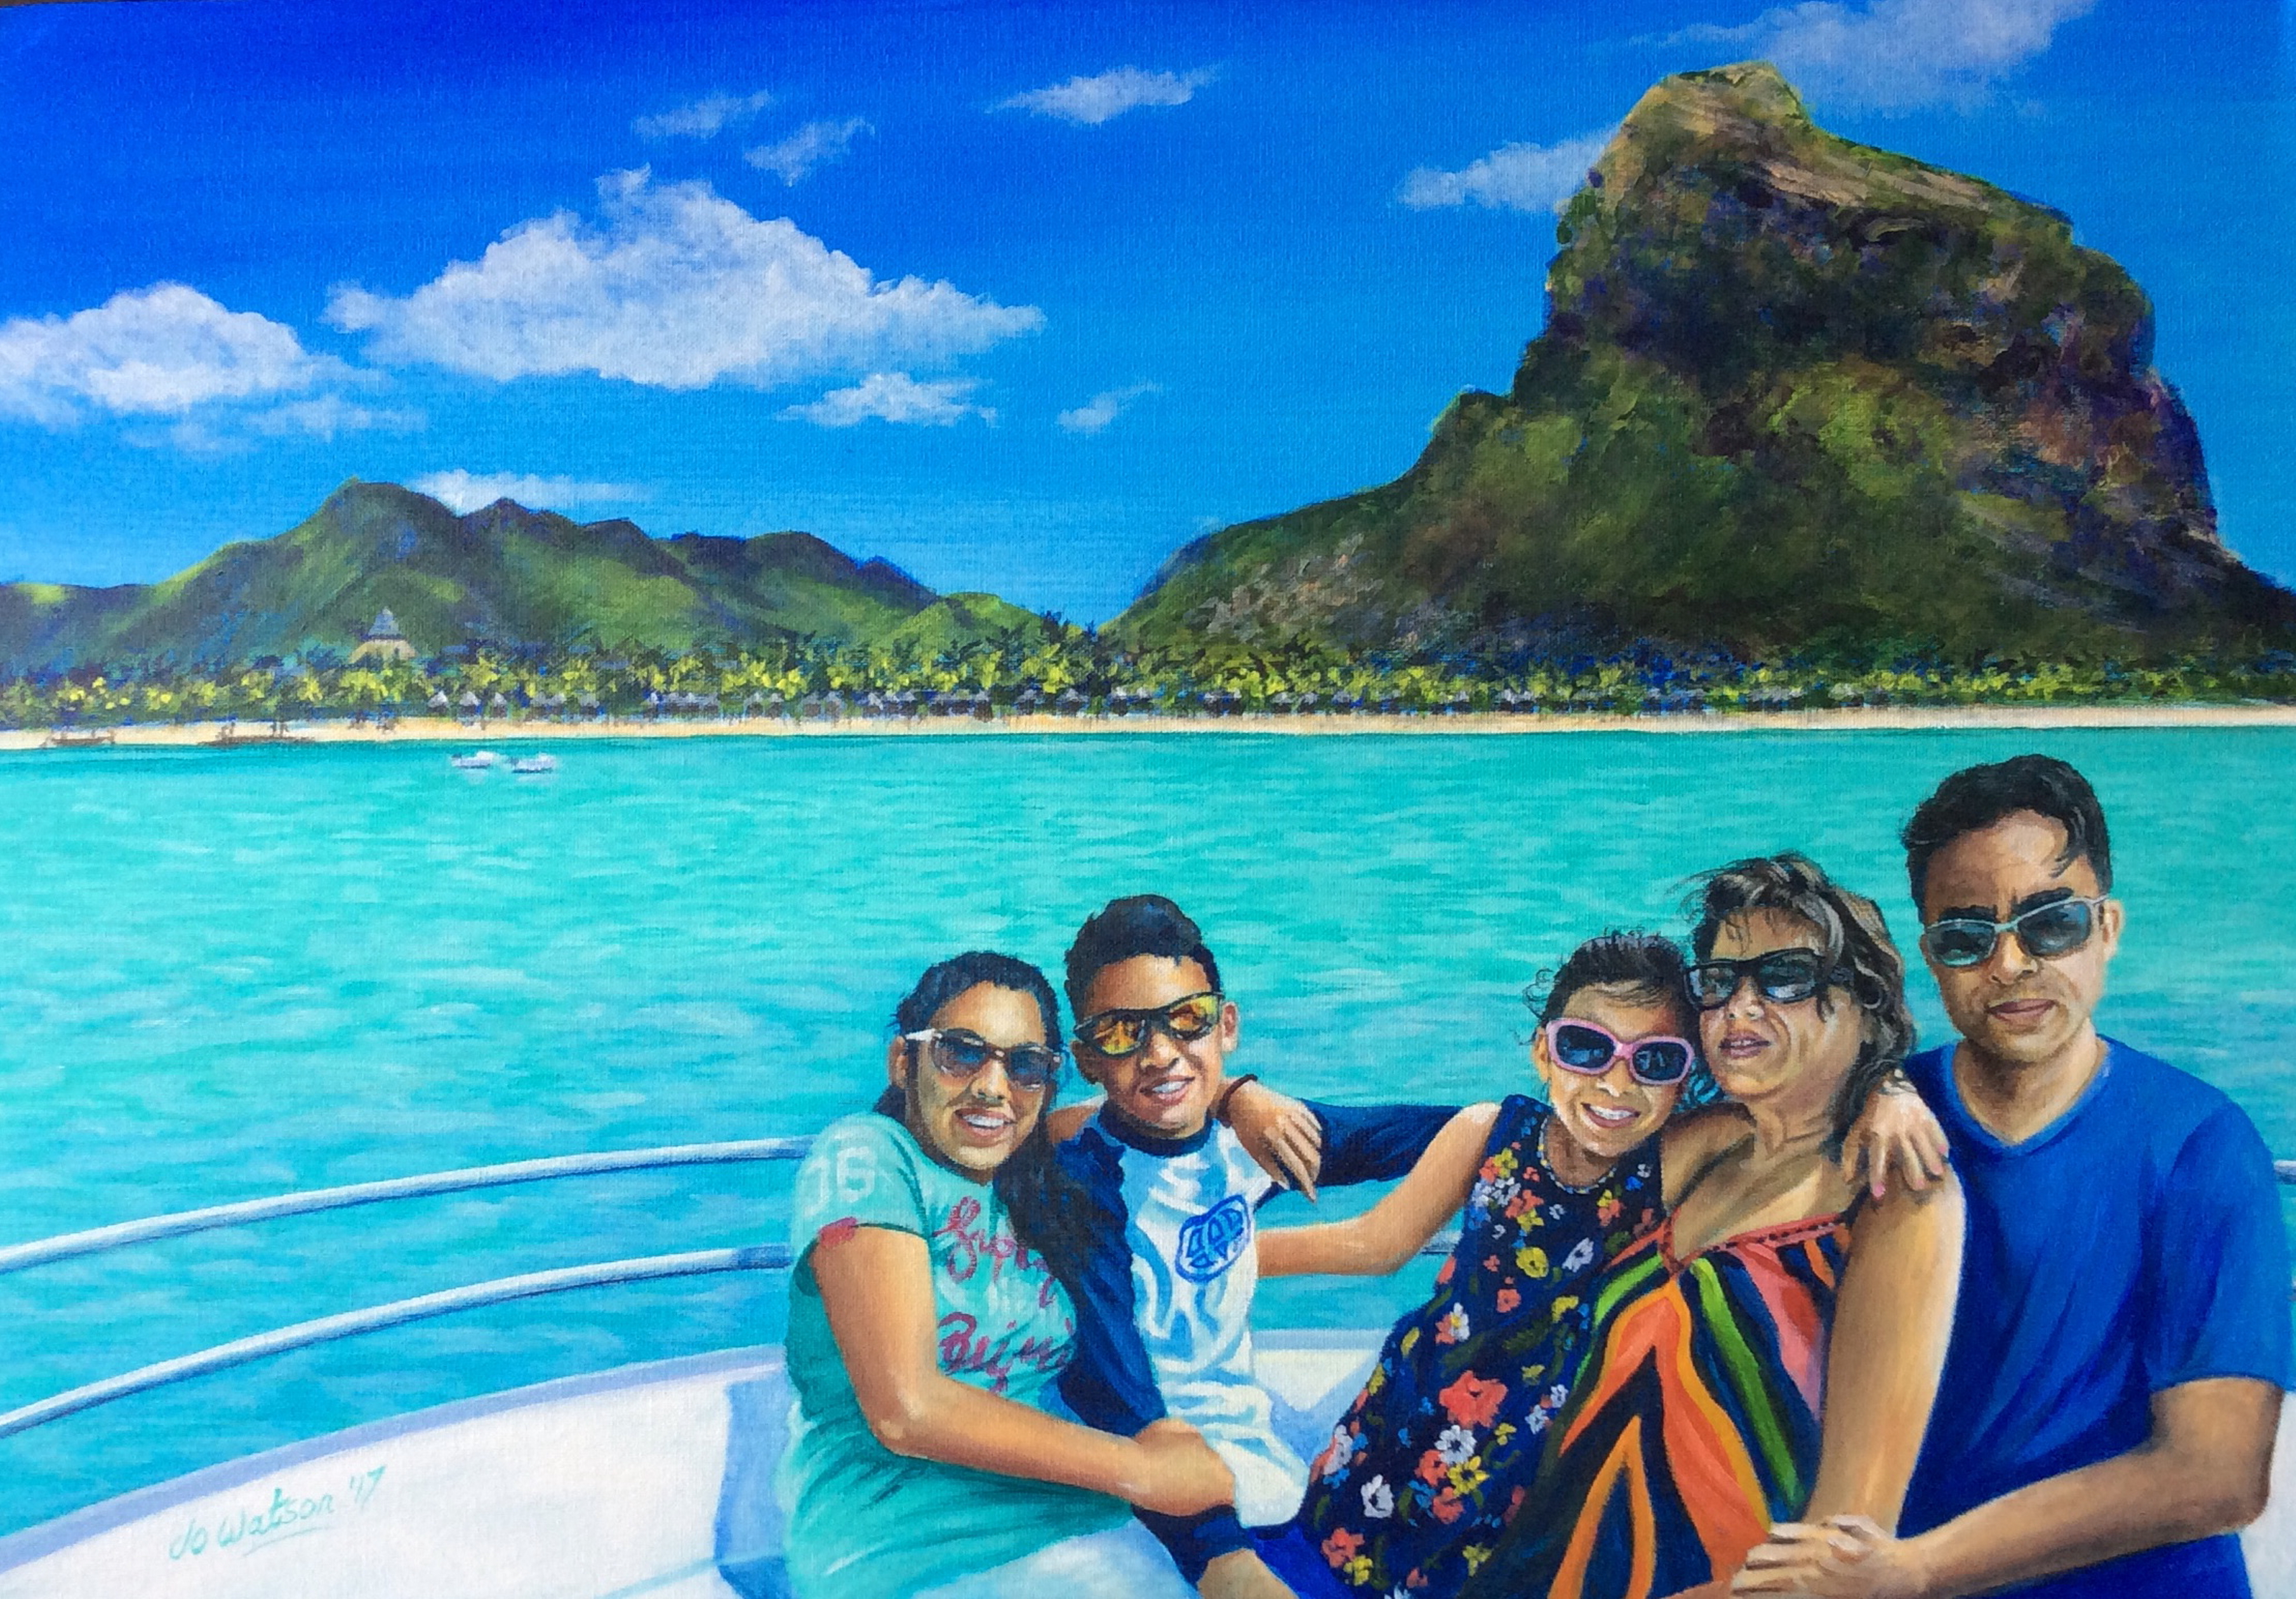 Family Memories in Mauritius (commission)